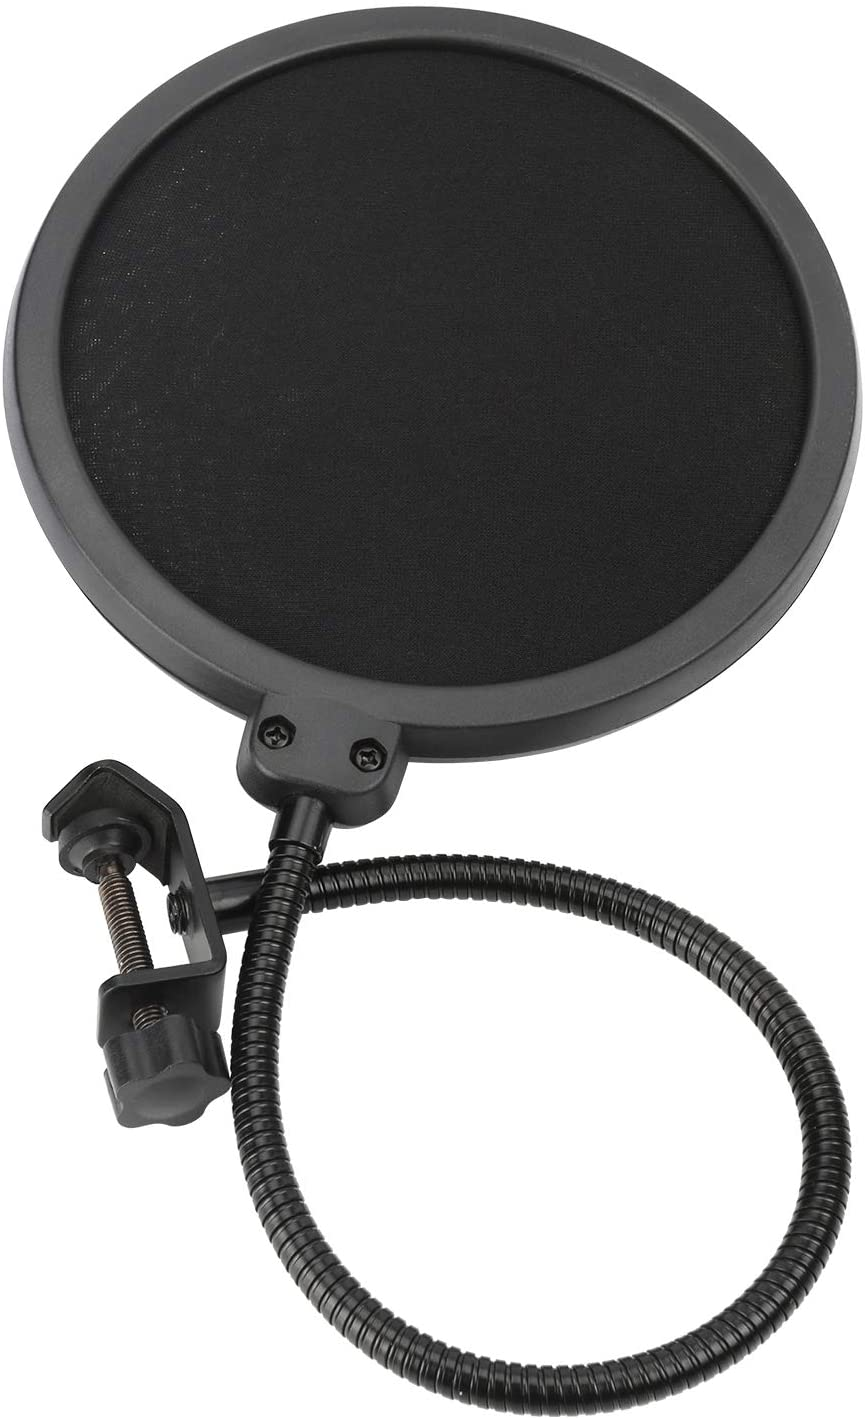 Pop filter, pop screen for voiceover recording. Set up your home recording studio.